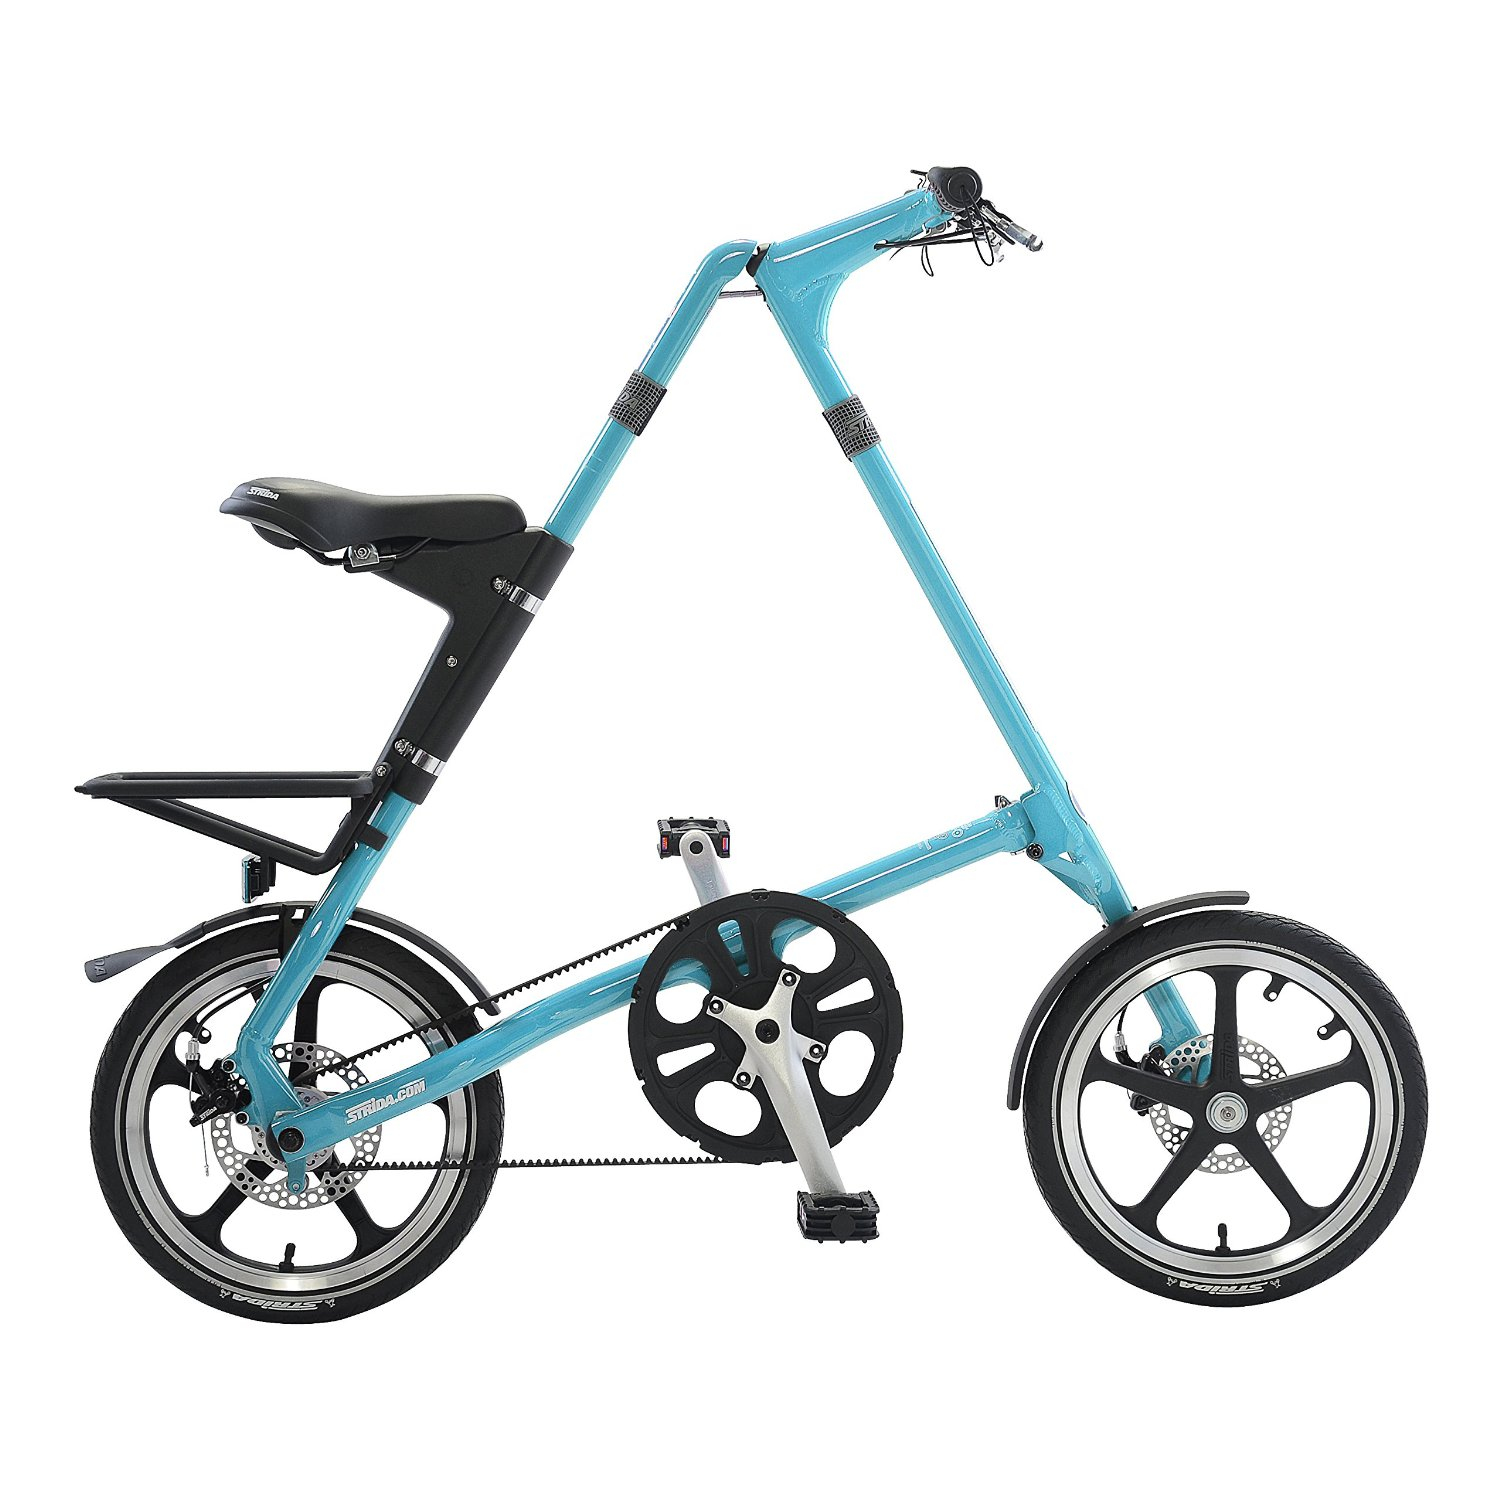 Strida folding bike: overview, features and reviews 71